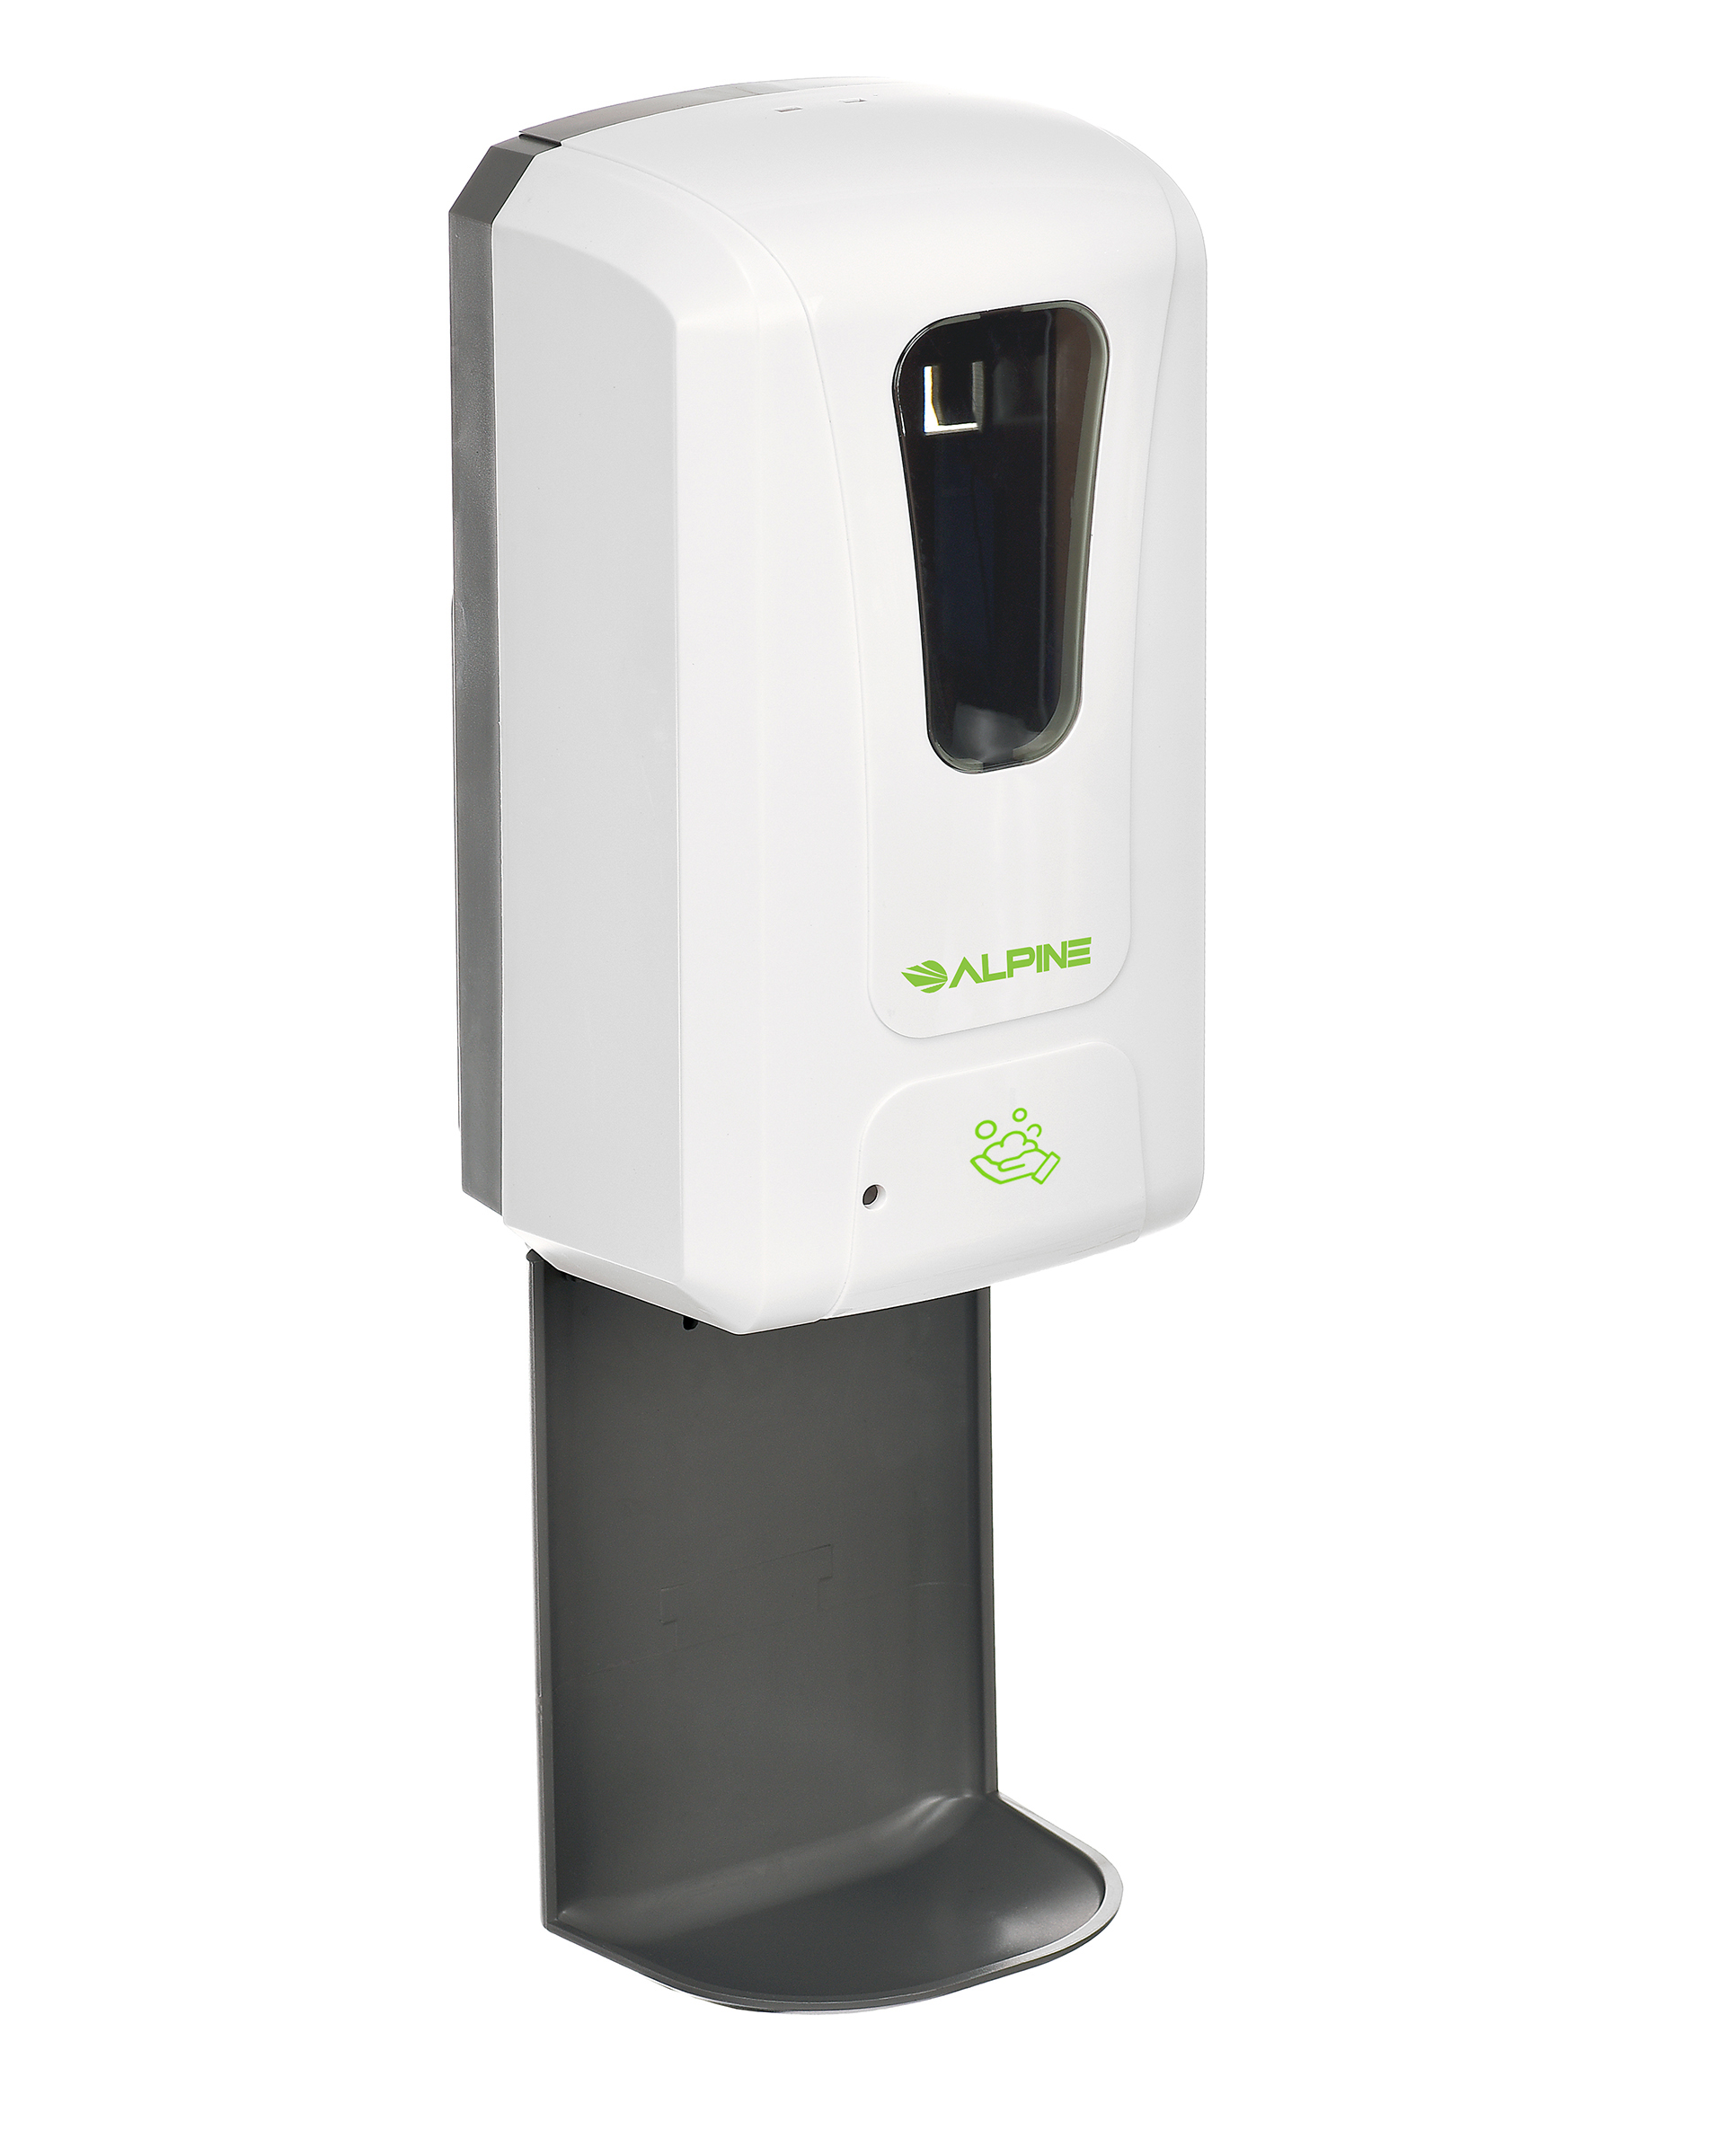 AUTOMATIC HANDS-FREE FOAM HAND SANITIZER/SOAP DISPENSER, 1200 ML, WHITE